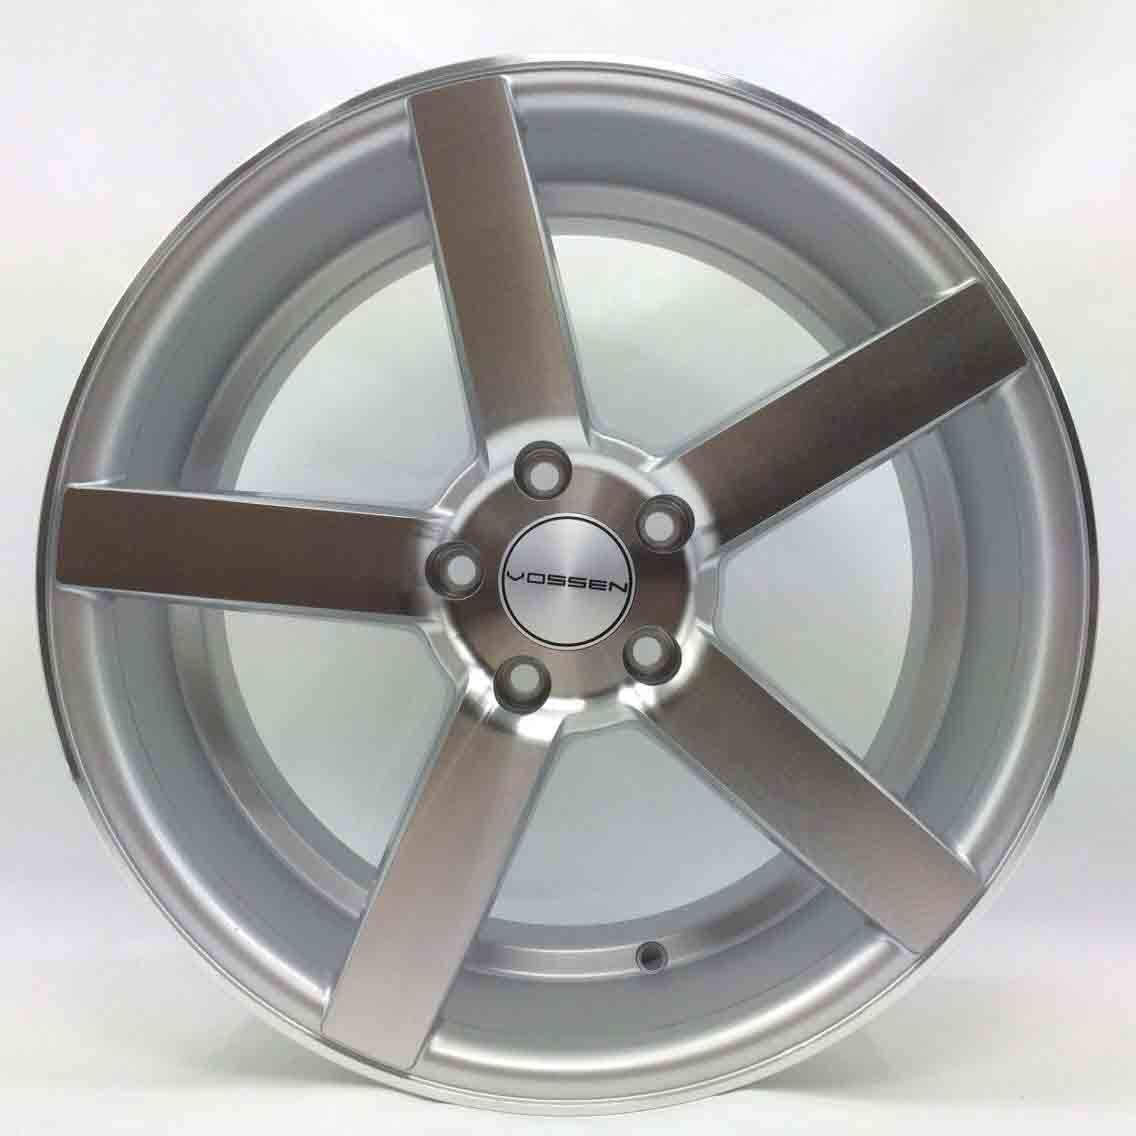 Vossen CV3 Alloy Wheel (SR5170)